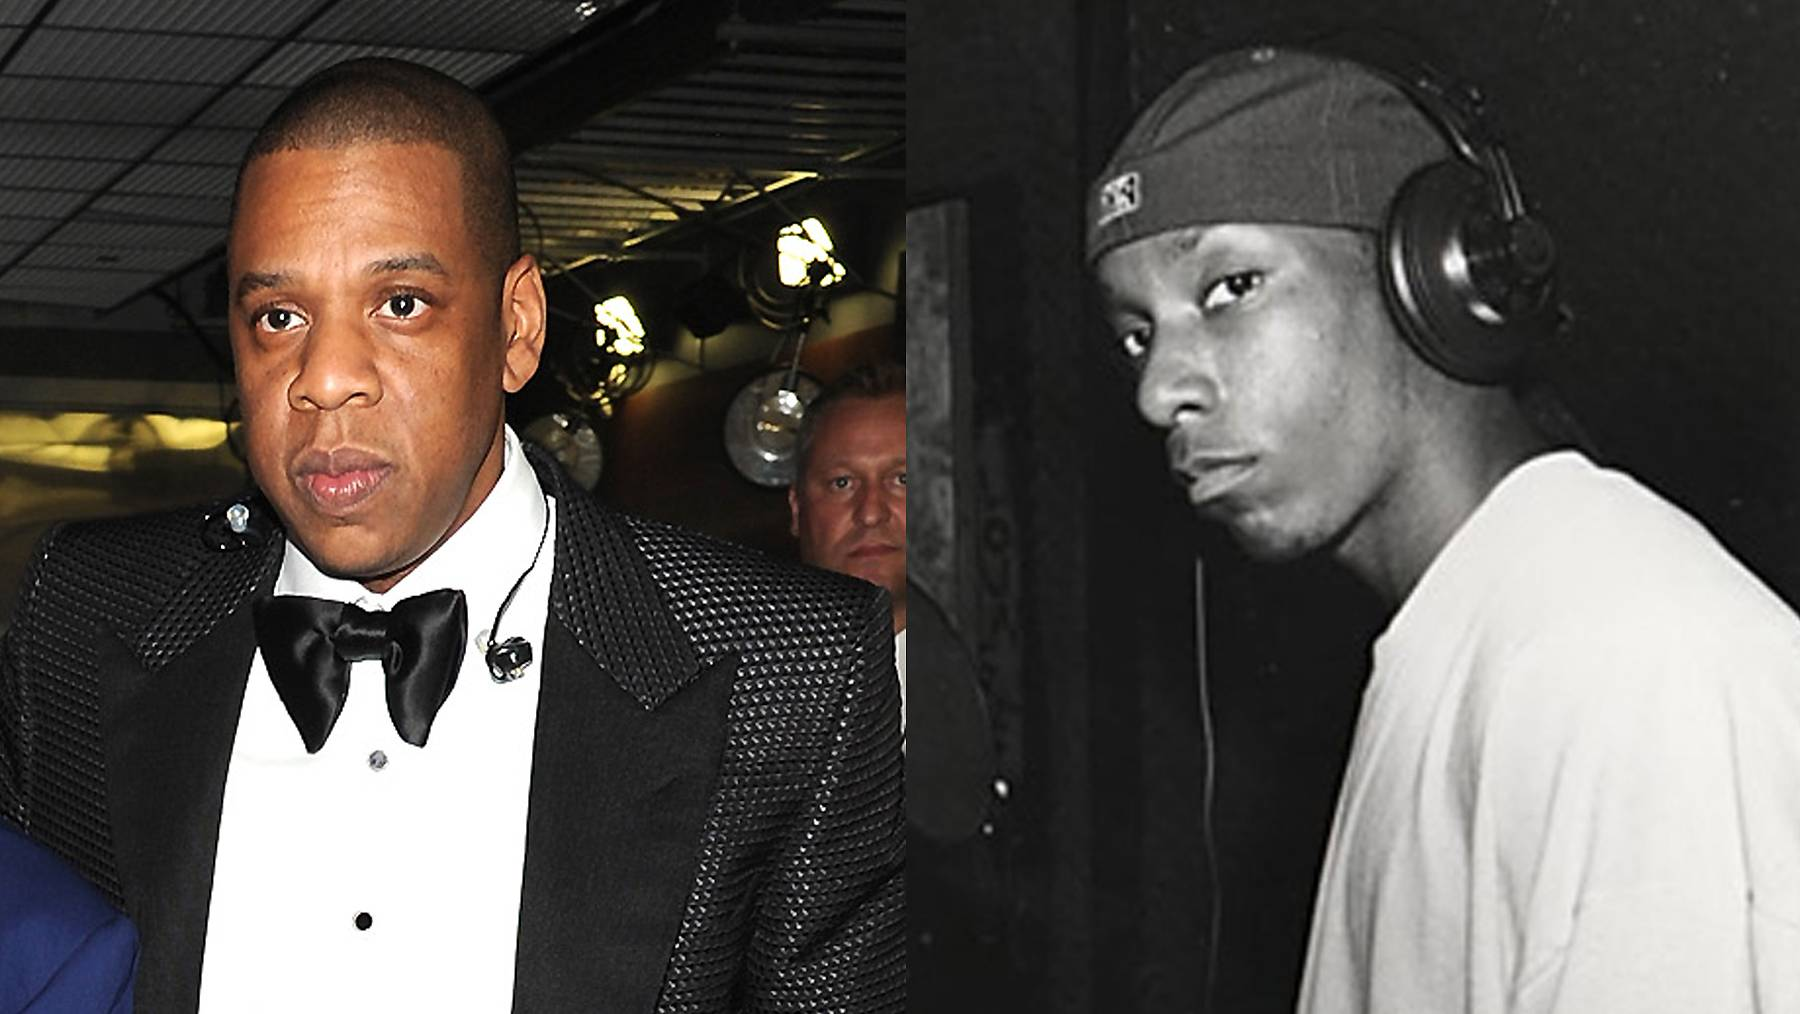 """Jay Z and Big L ? """"7 Minute Freestyle"""" - Lyric: ?Come on and ride the rhythm I produce like jizm/ Just like the Gods I start with knowledge and follow with wisdom/ For greater understanding I?m landing blows and knocking sense into those that oppose me./ Enticing when slicing through tracks/ You screaming, Jesus Christ he?s back/ And God knows he can rap?Back in 1995, Jay Z stopped by The Stretch and Bobbito Showand kicked a few rhymes with the late Big L, which turned out to be one of best classic freestyle sessions of all time. On the track commonly referred to as the """"7-Minute Freestyle,"""" Jay Z spits the Nation of Gods and Earths principal that knowledge, wisdom and understanding are the first of the 12 jewels. Jay says that the people are screaming """"Jesus Christ he?s back"""" and is referring to himself as God and that God is now rapping...."""